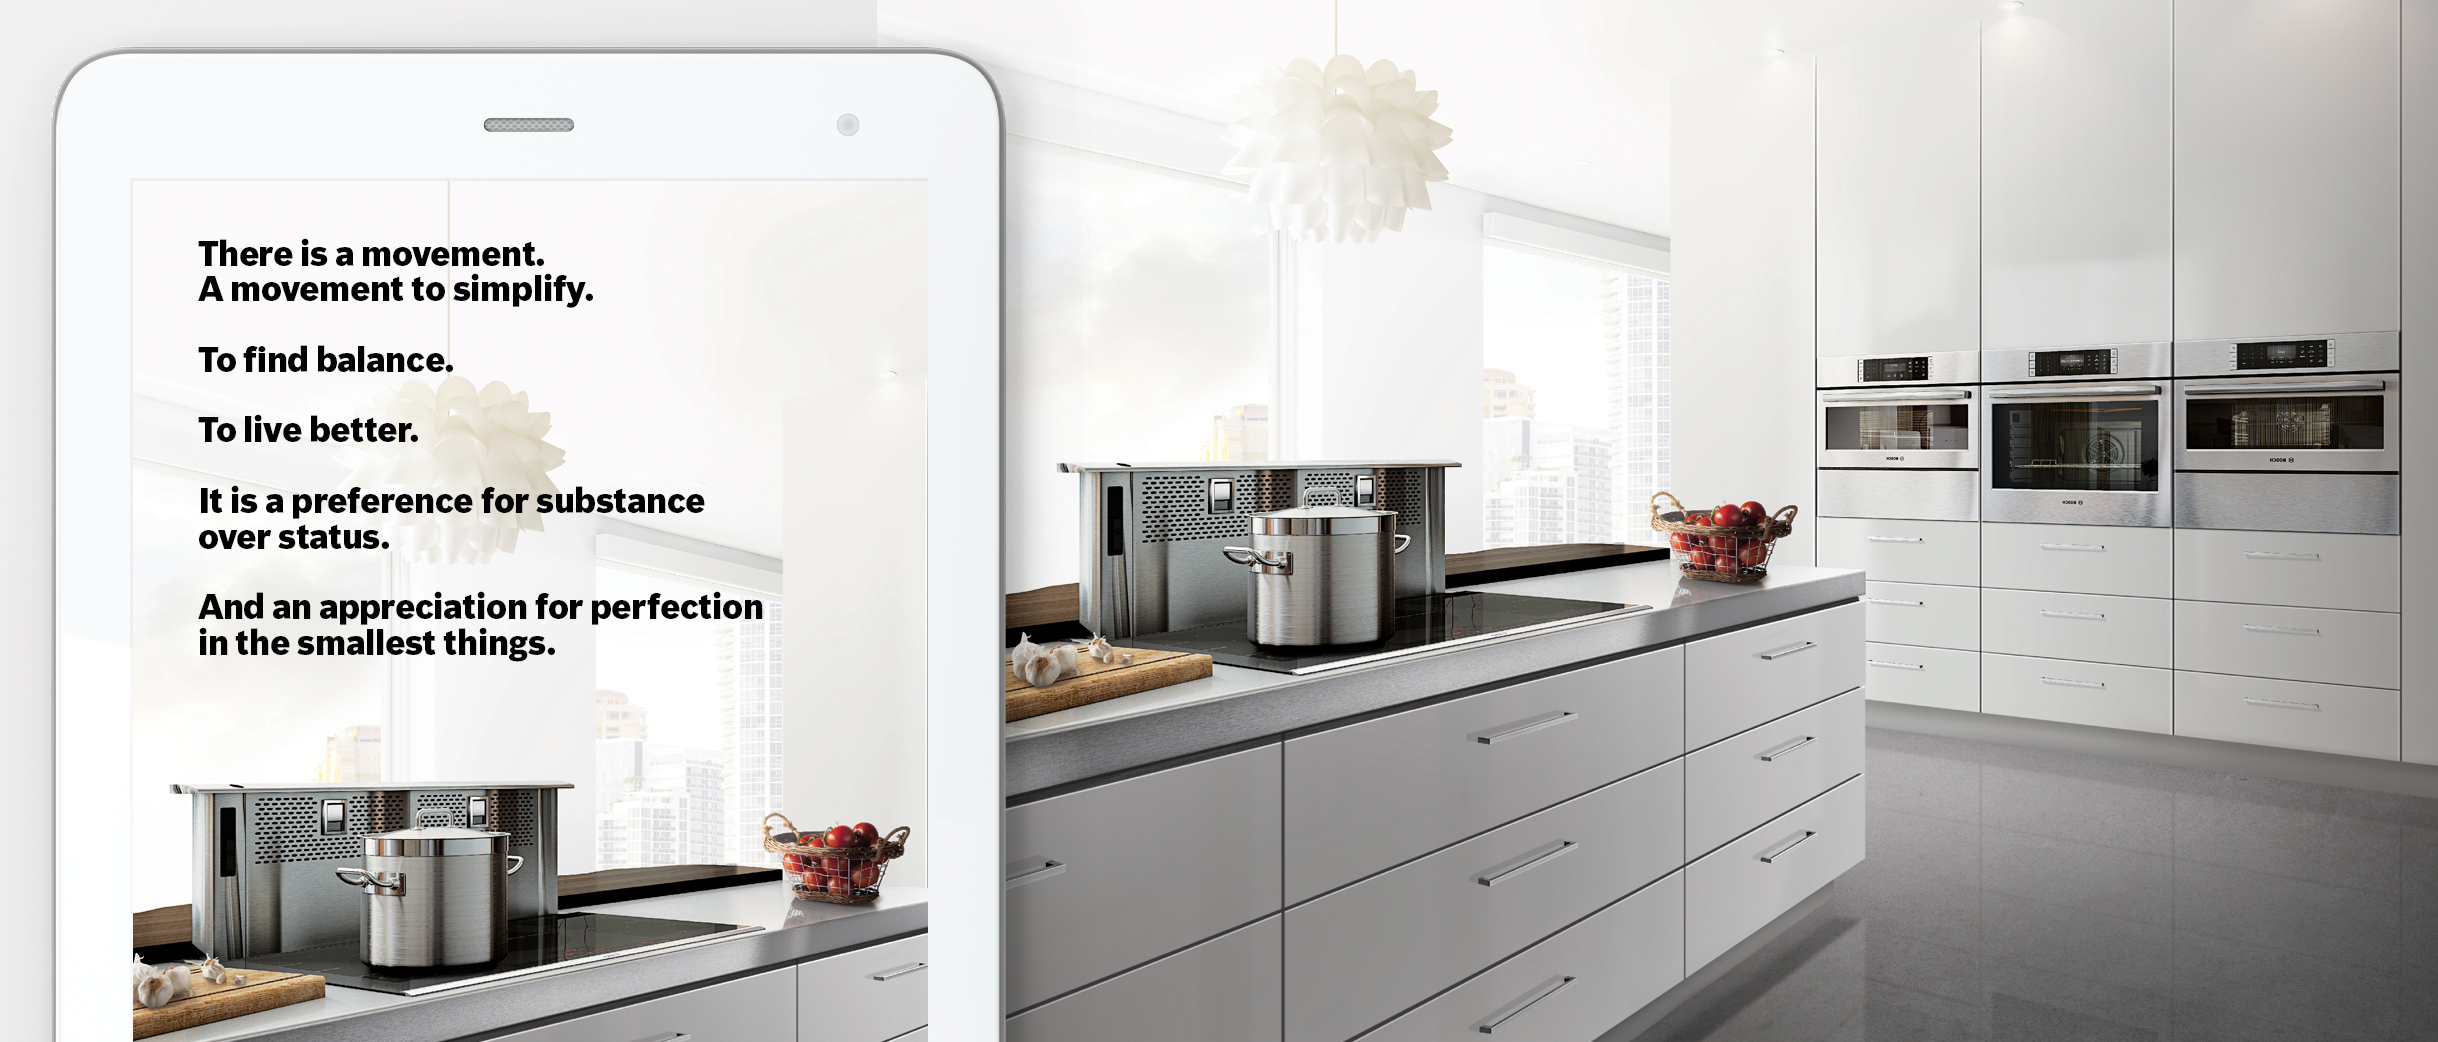 bosch kitchen shaker cabinets full service creative agency truth and advertising jpg